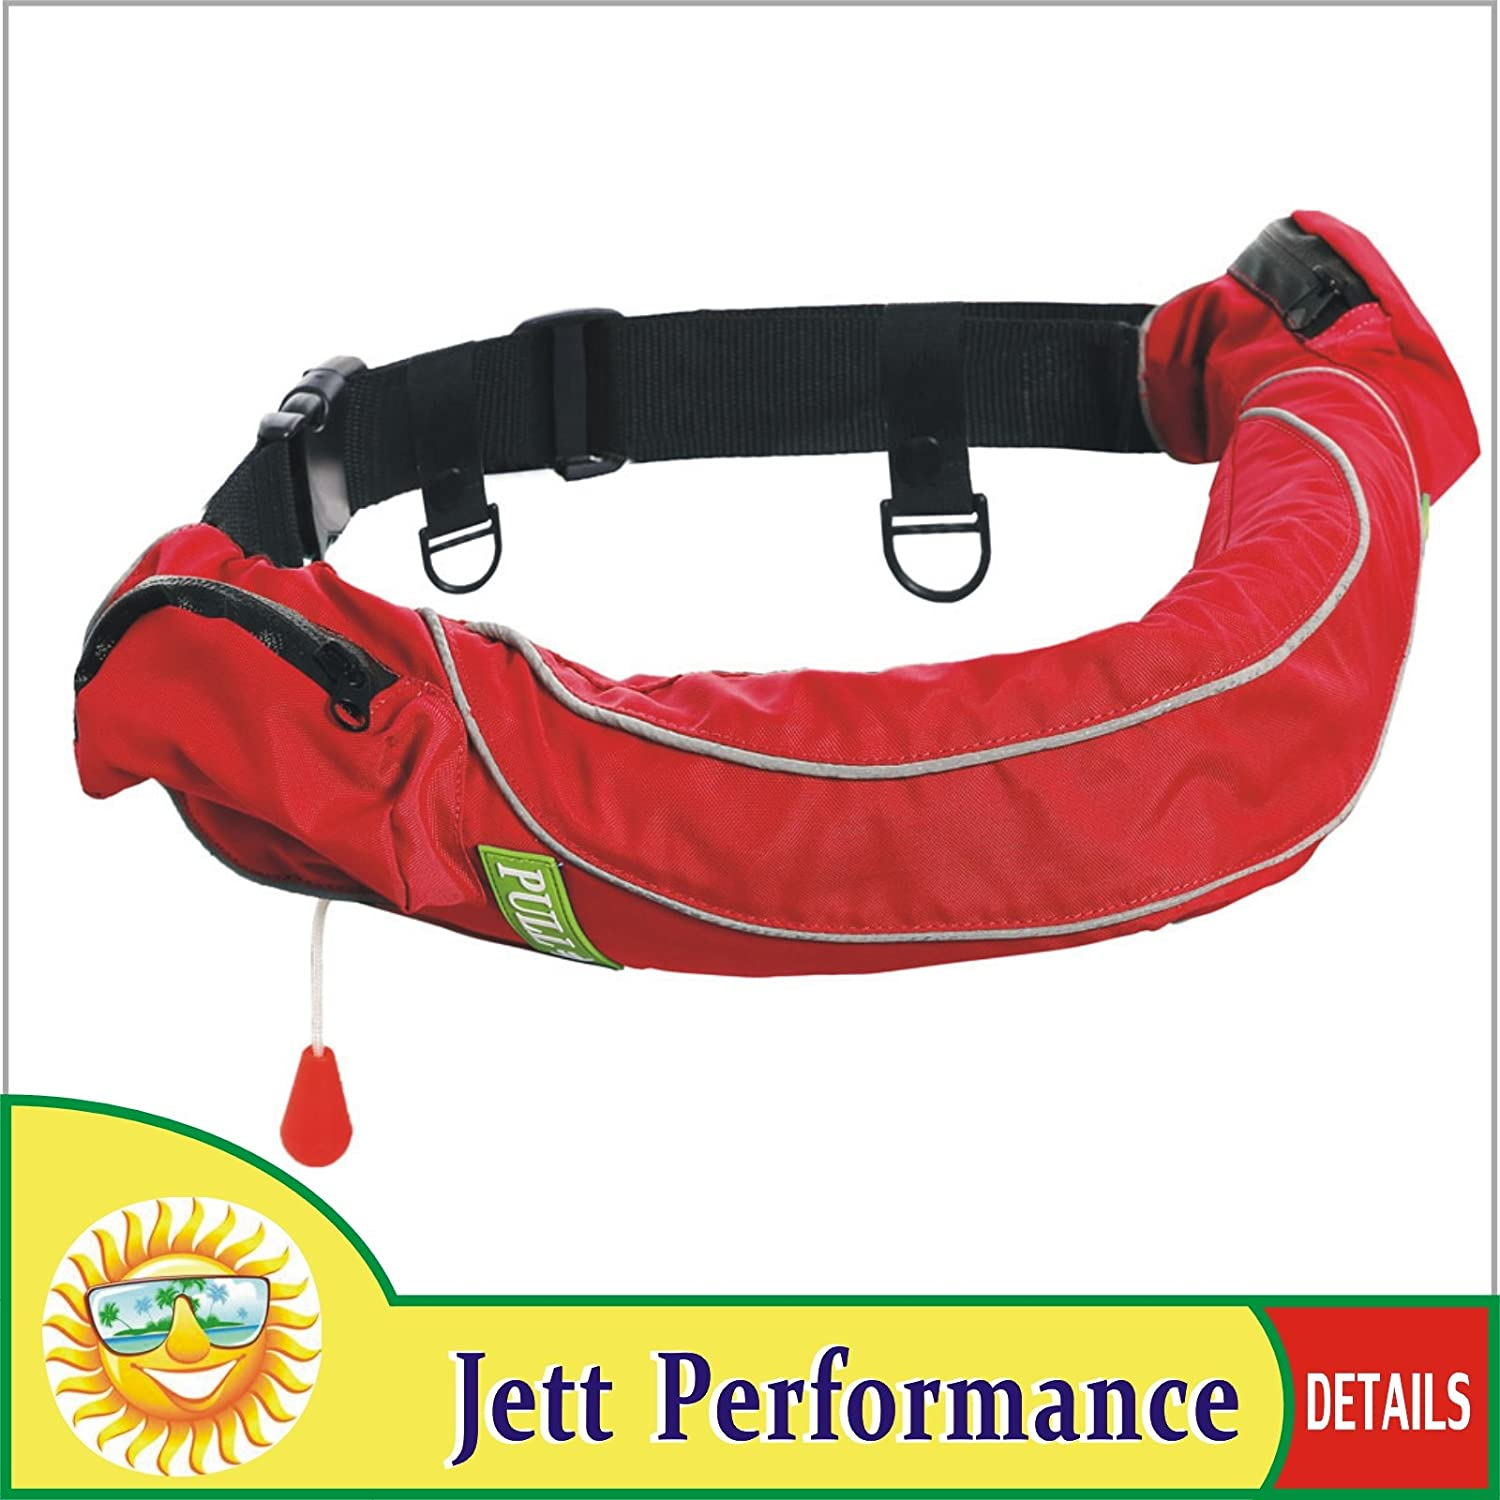 Lifesaving Pro Automatic//Manual Inflatable Belt Pack Waist Pouch Pack PFD Inflate Life Jacket Zippered Pocket Lifejacket Vest SUP Survival Aid